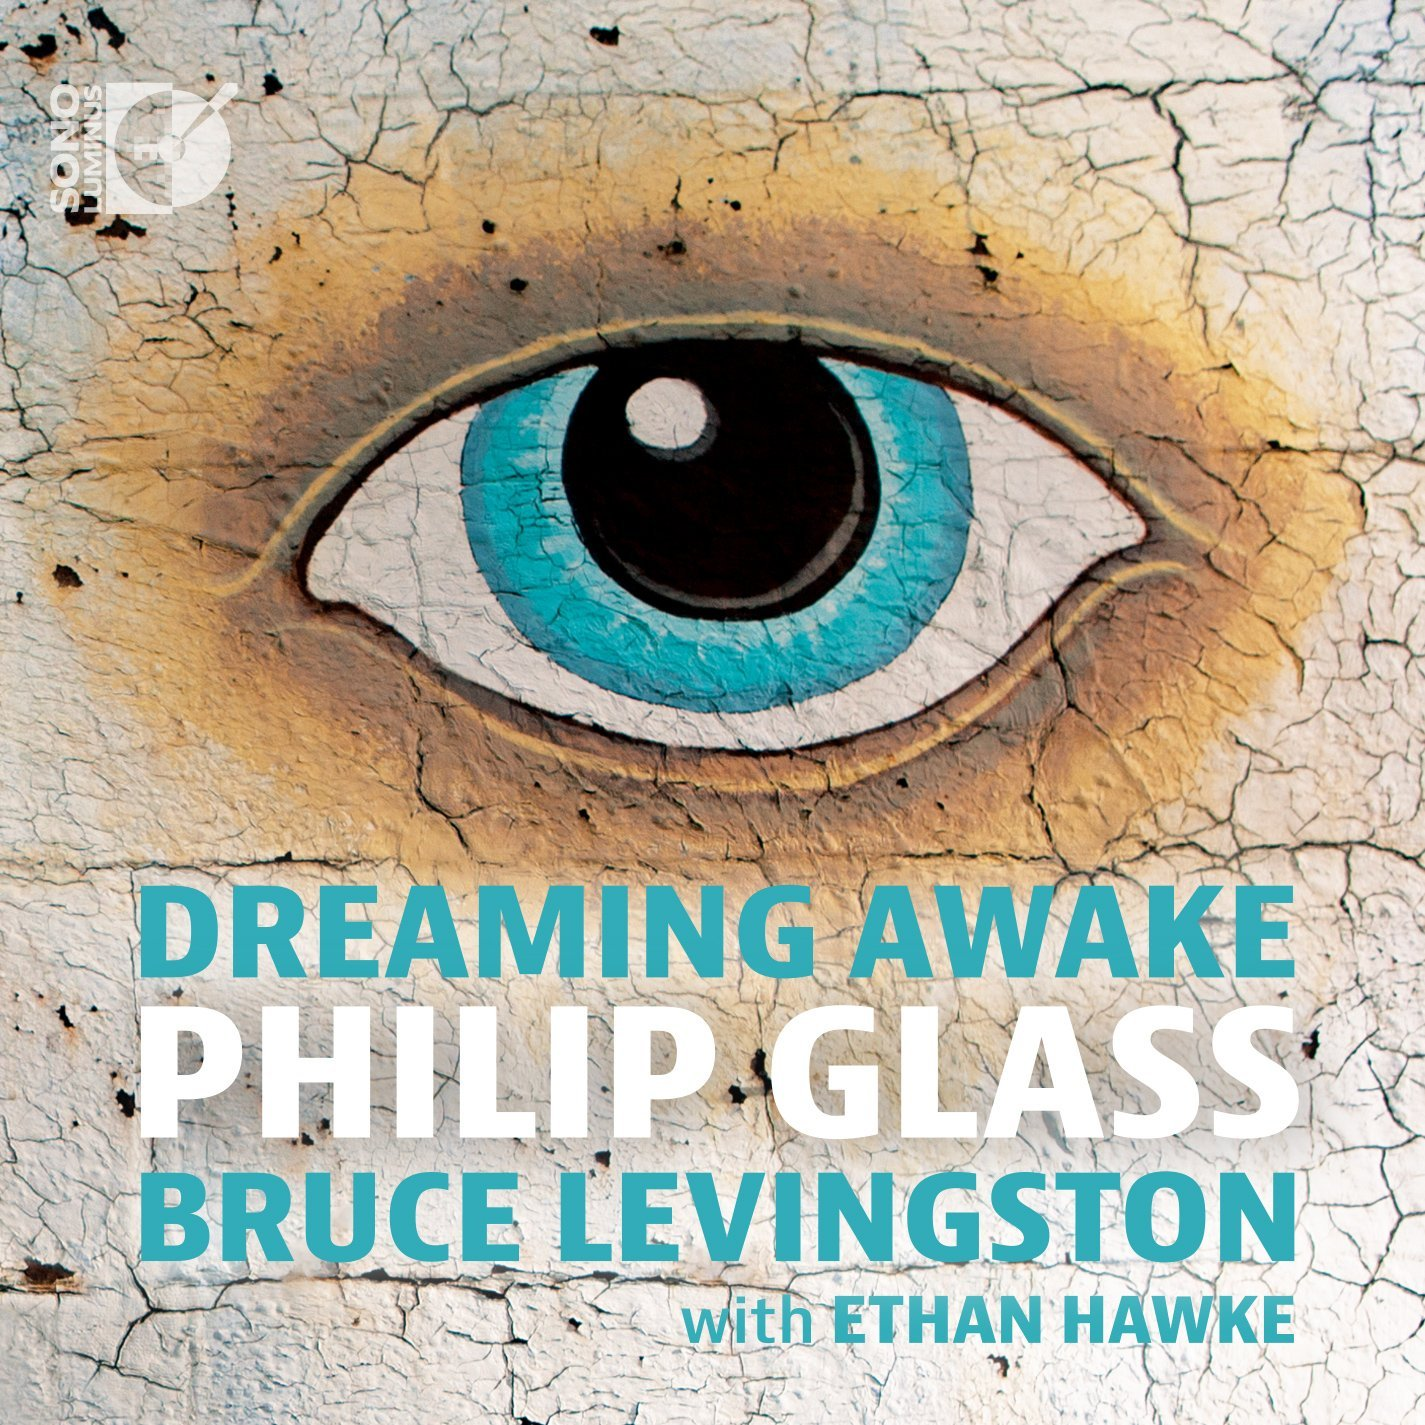 Philip Glass's Dreaming Awake